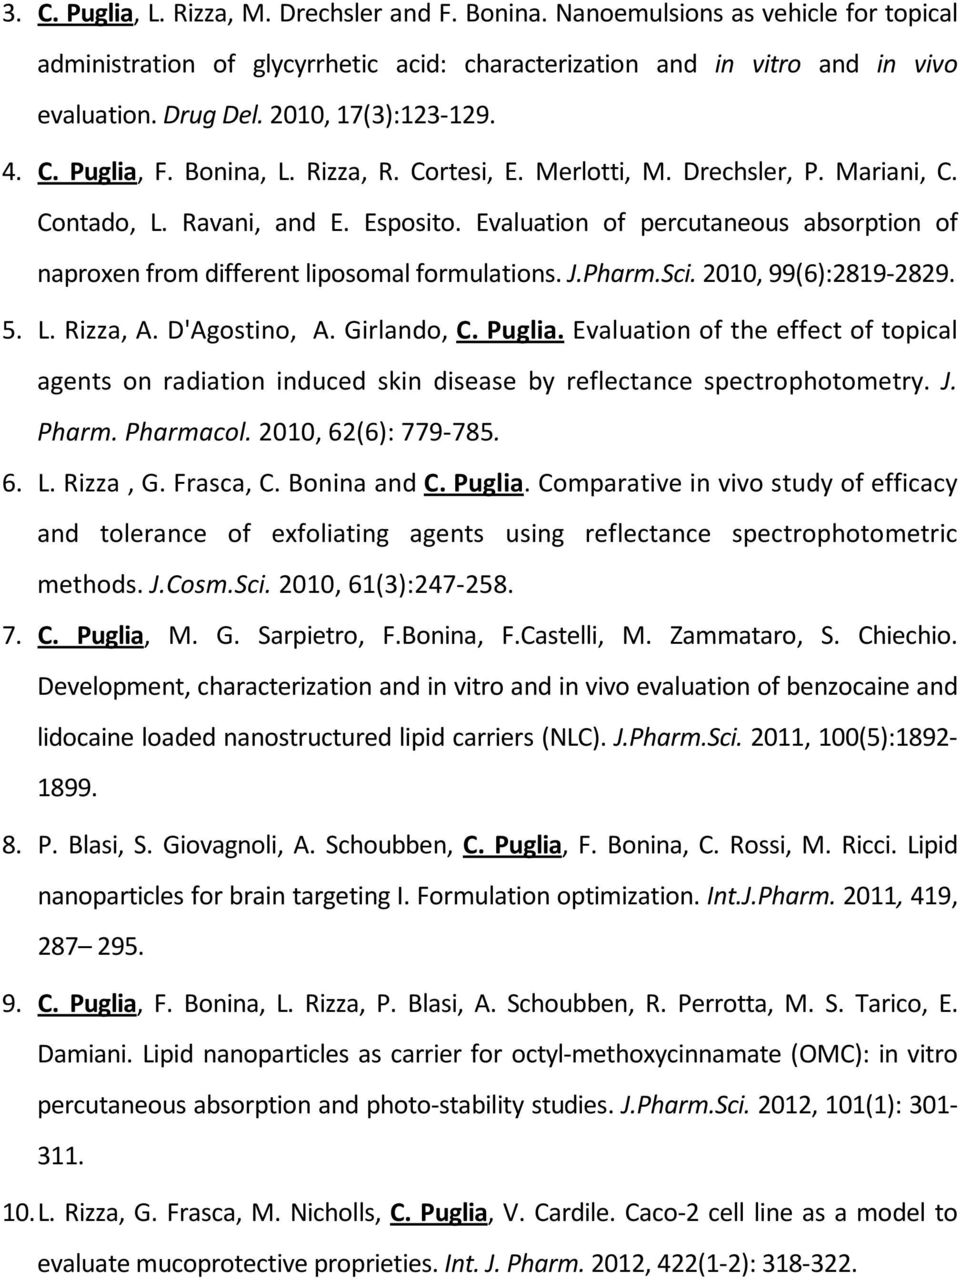 Evaluation of percutaneous absorption of naproxen from different liposomal formulations. J.Pharm.Sci. 2010, 99(6):2819-2829. 5. L. Rizza, A. D'Agostino, A. Girlando, C. Puglia.